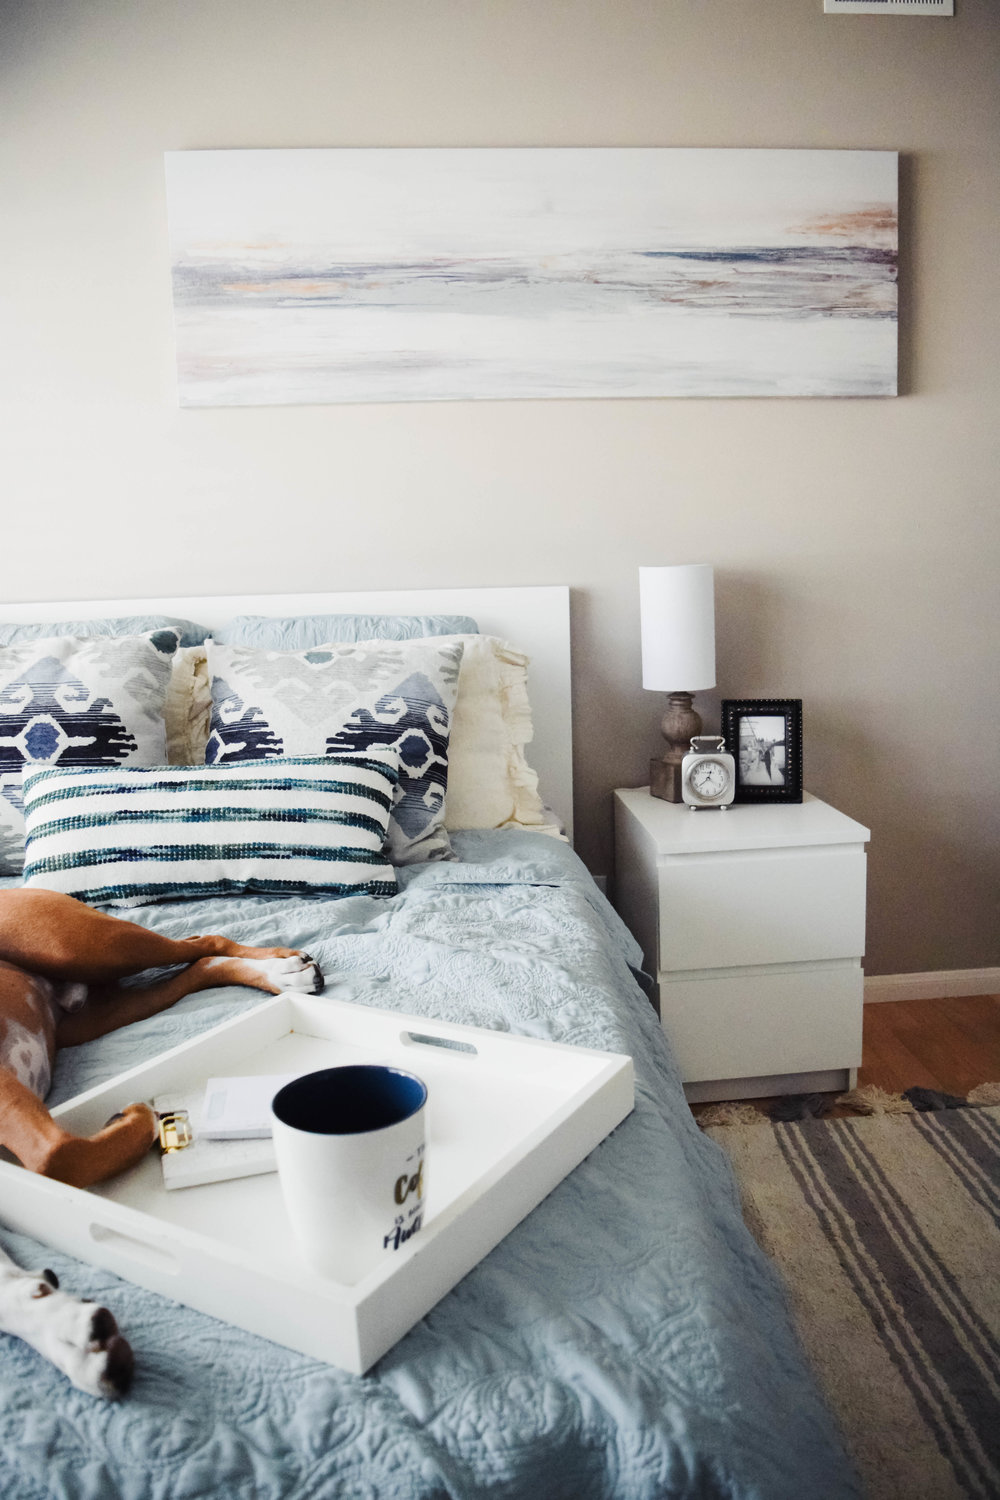 Decorating a small bedroom on a budget -- mommy blogger-vlogger - The Overwhelmed Mommy